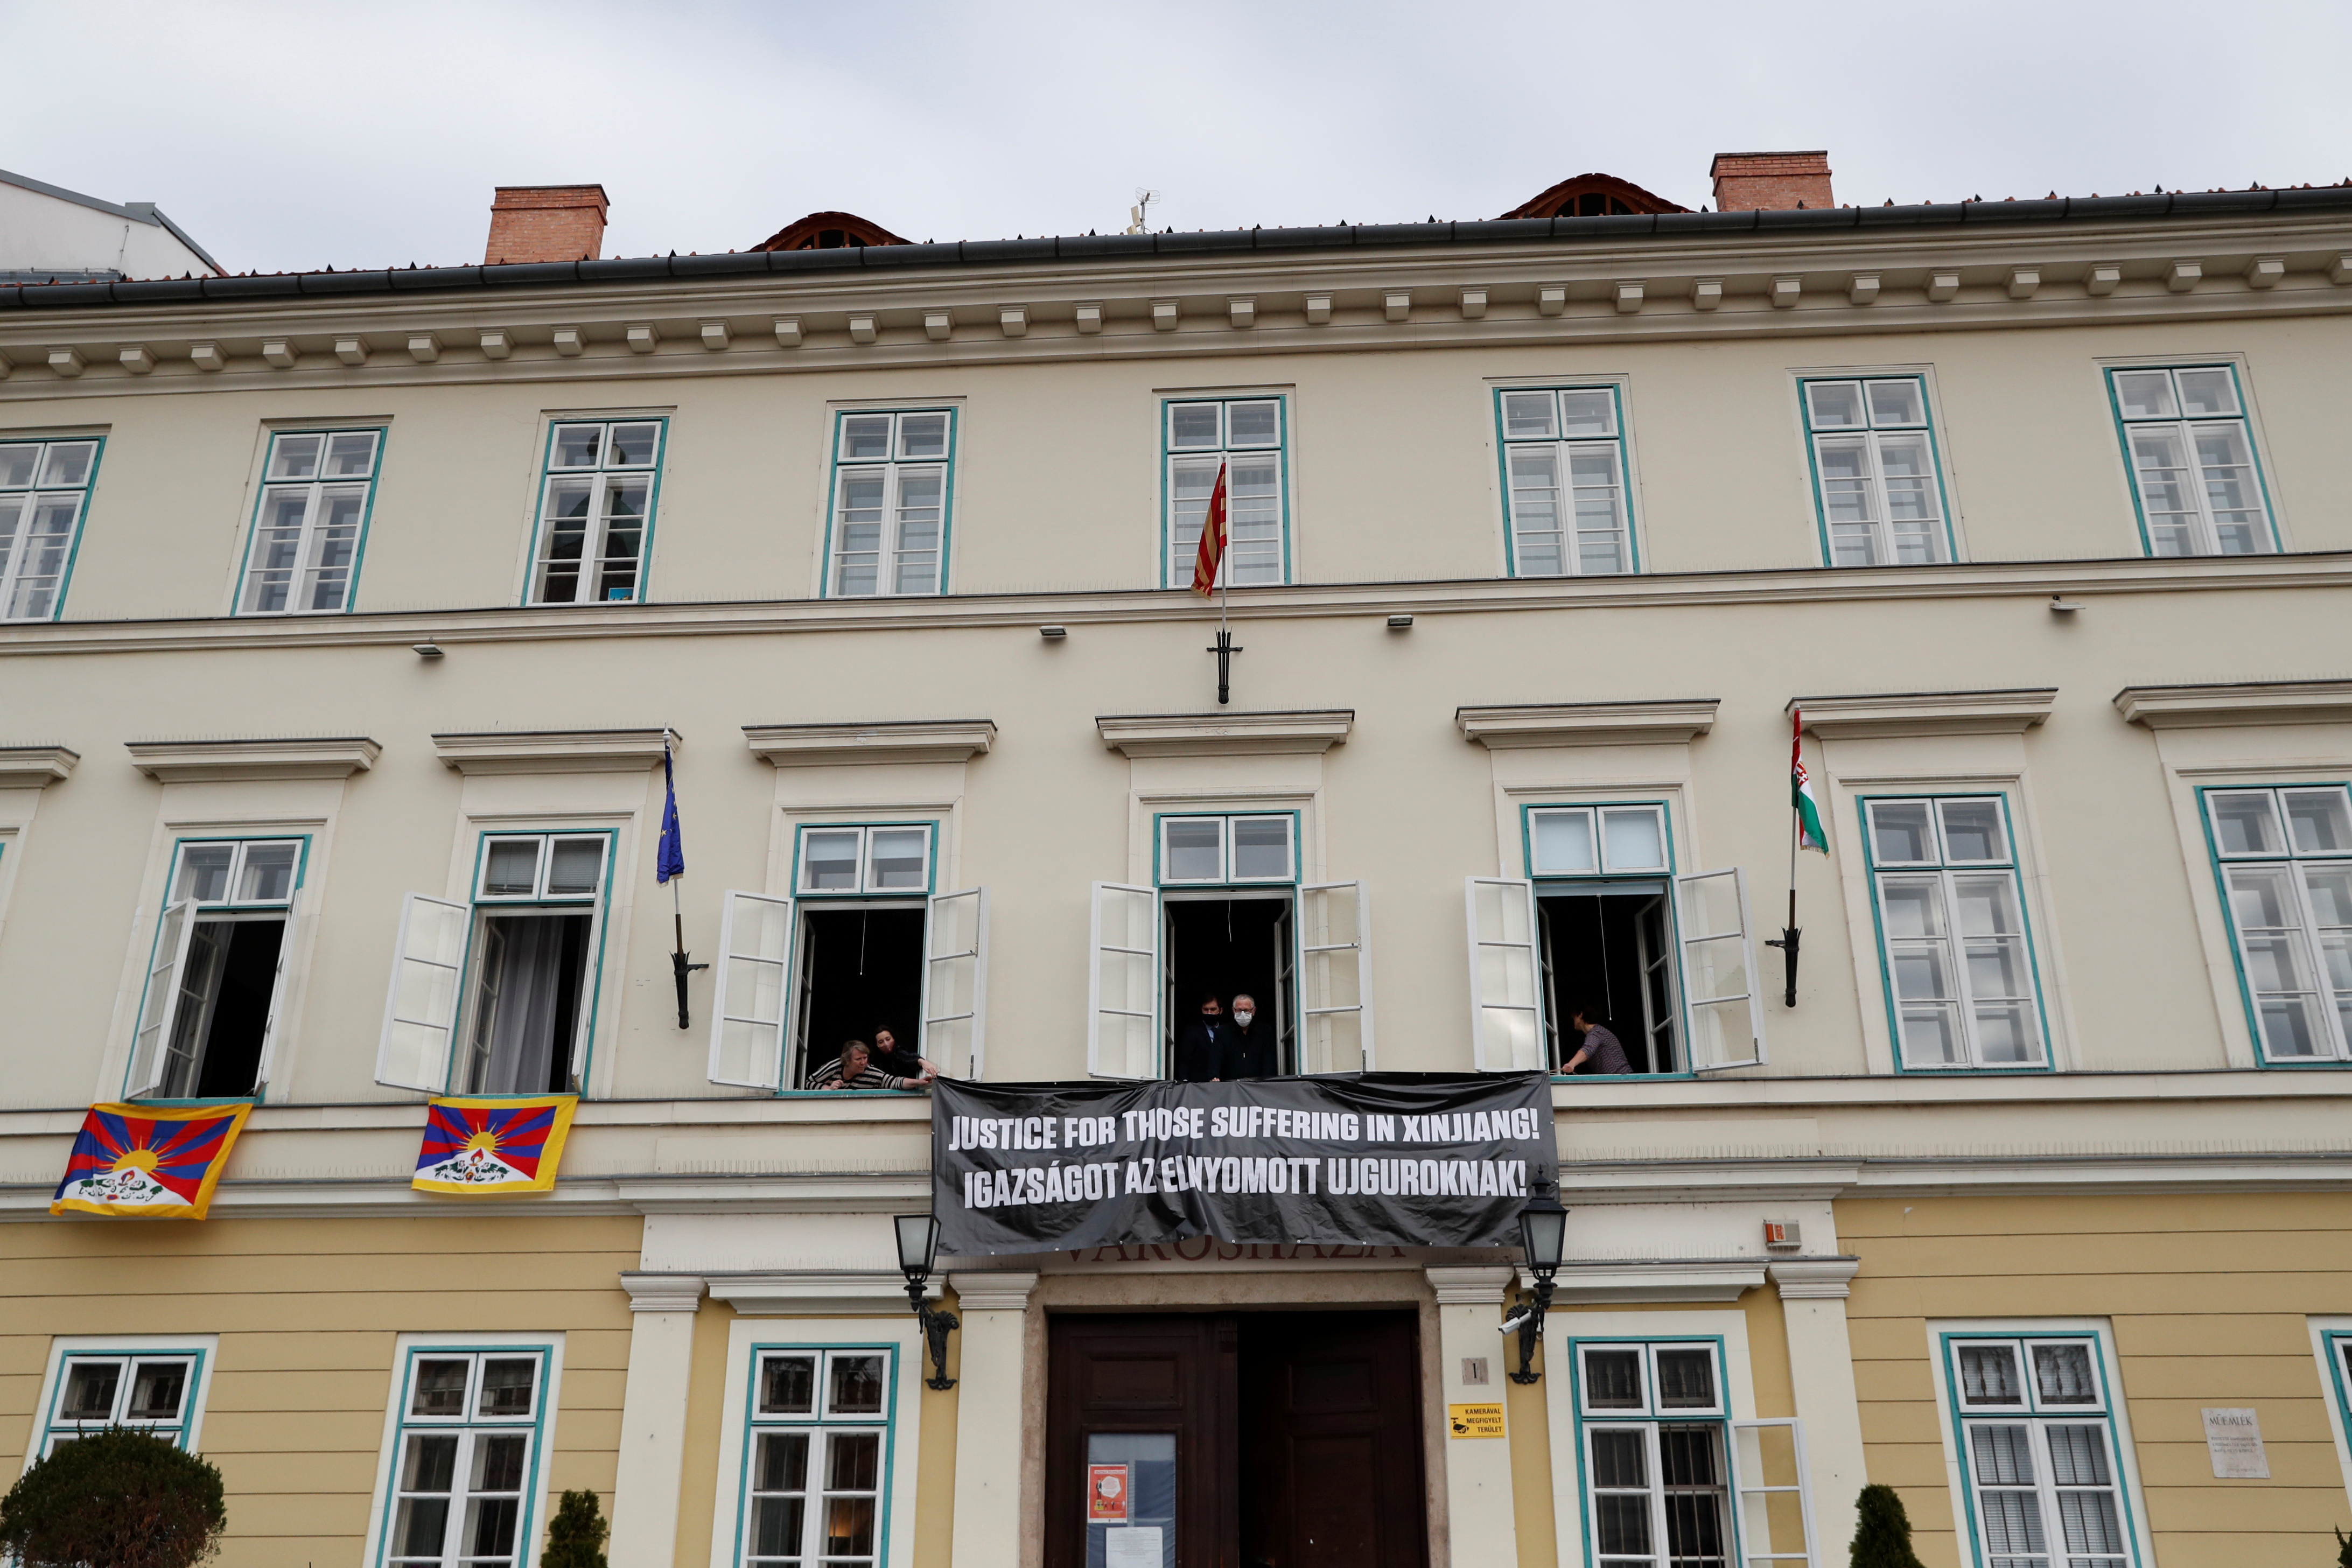 Hungarian opposition members hang a banner outside the District Mayor?s Office building during the visit of Chinese Defence Minister Wei Fenghe, to protest over China's treatment of Uighurs, in Budapest, Hungary, March 25, 2021. REUTERS/Bernadett Szabo